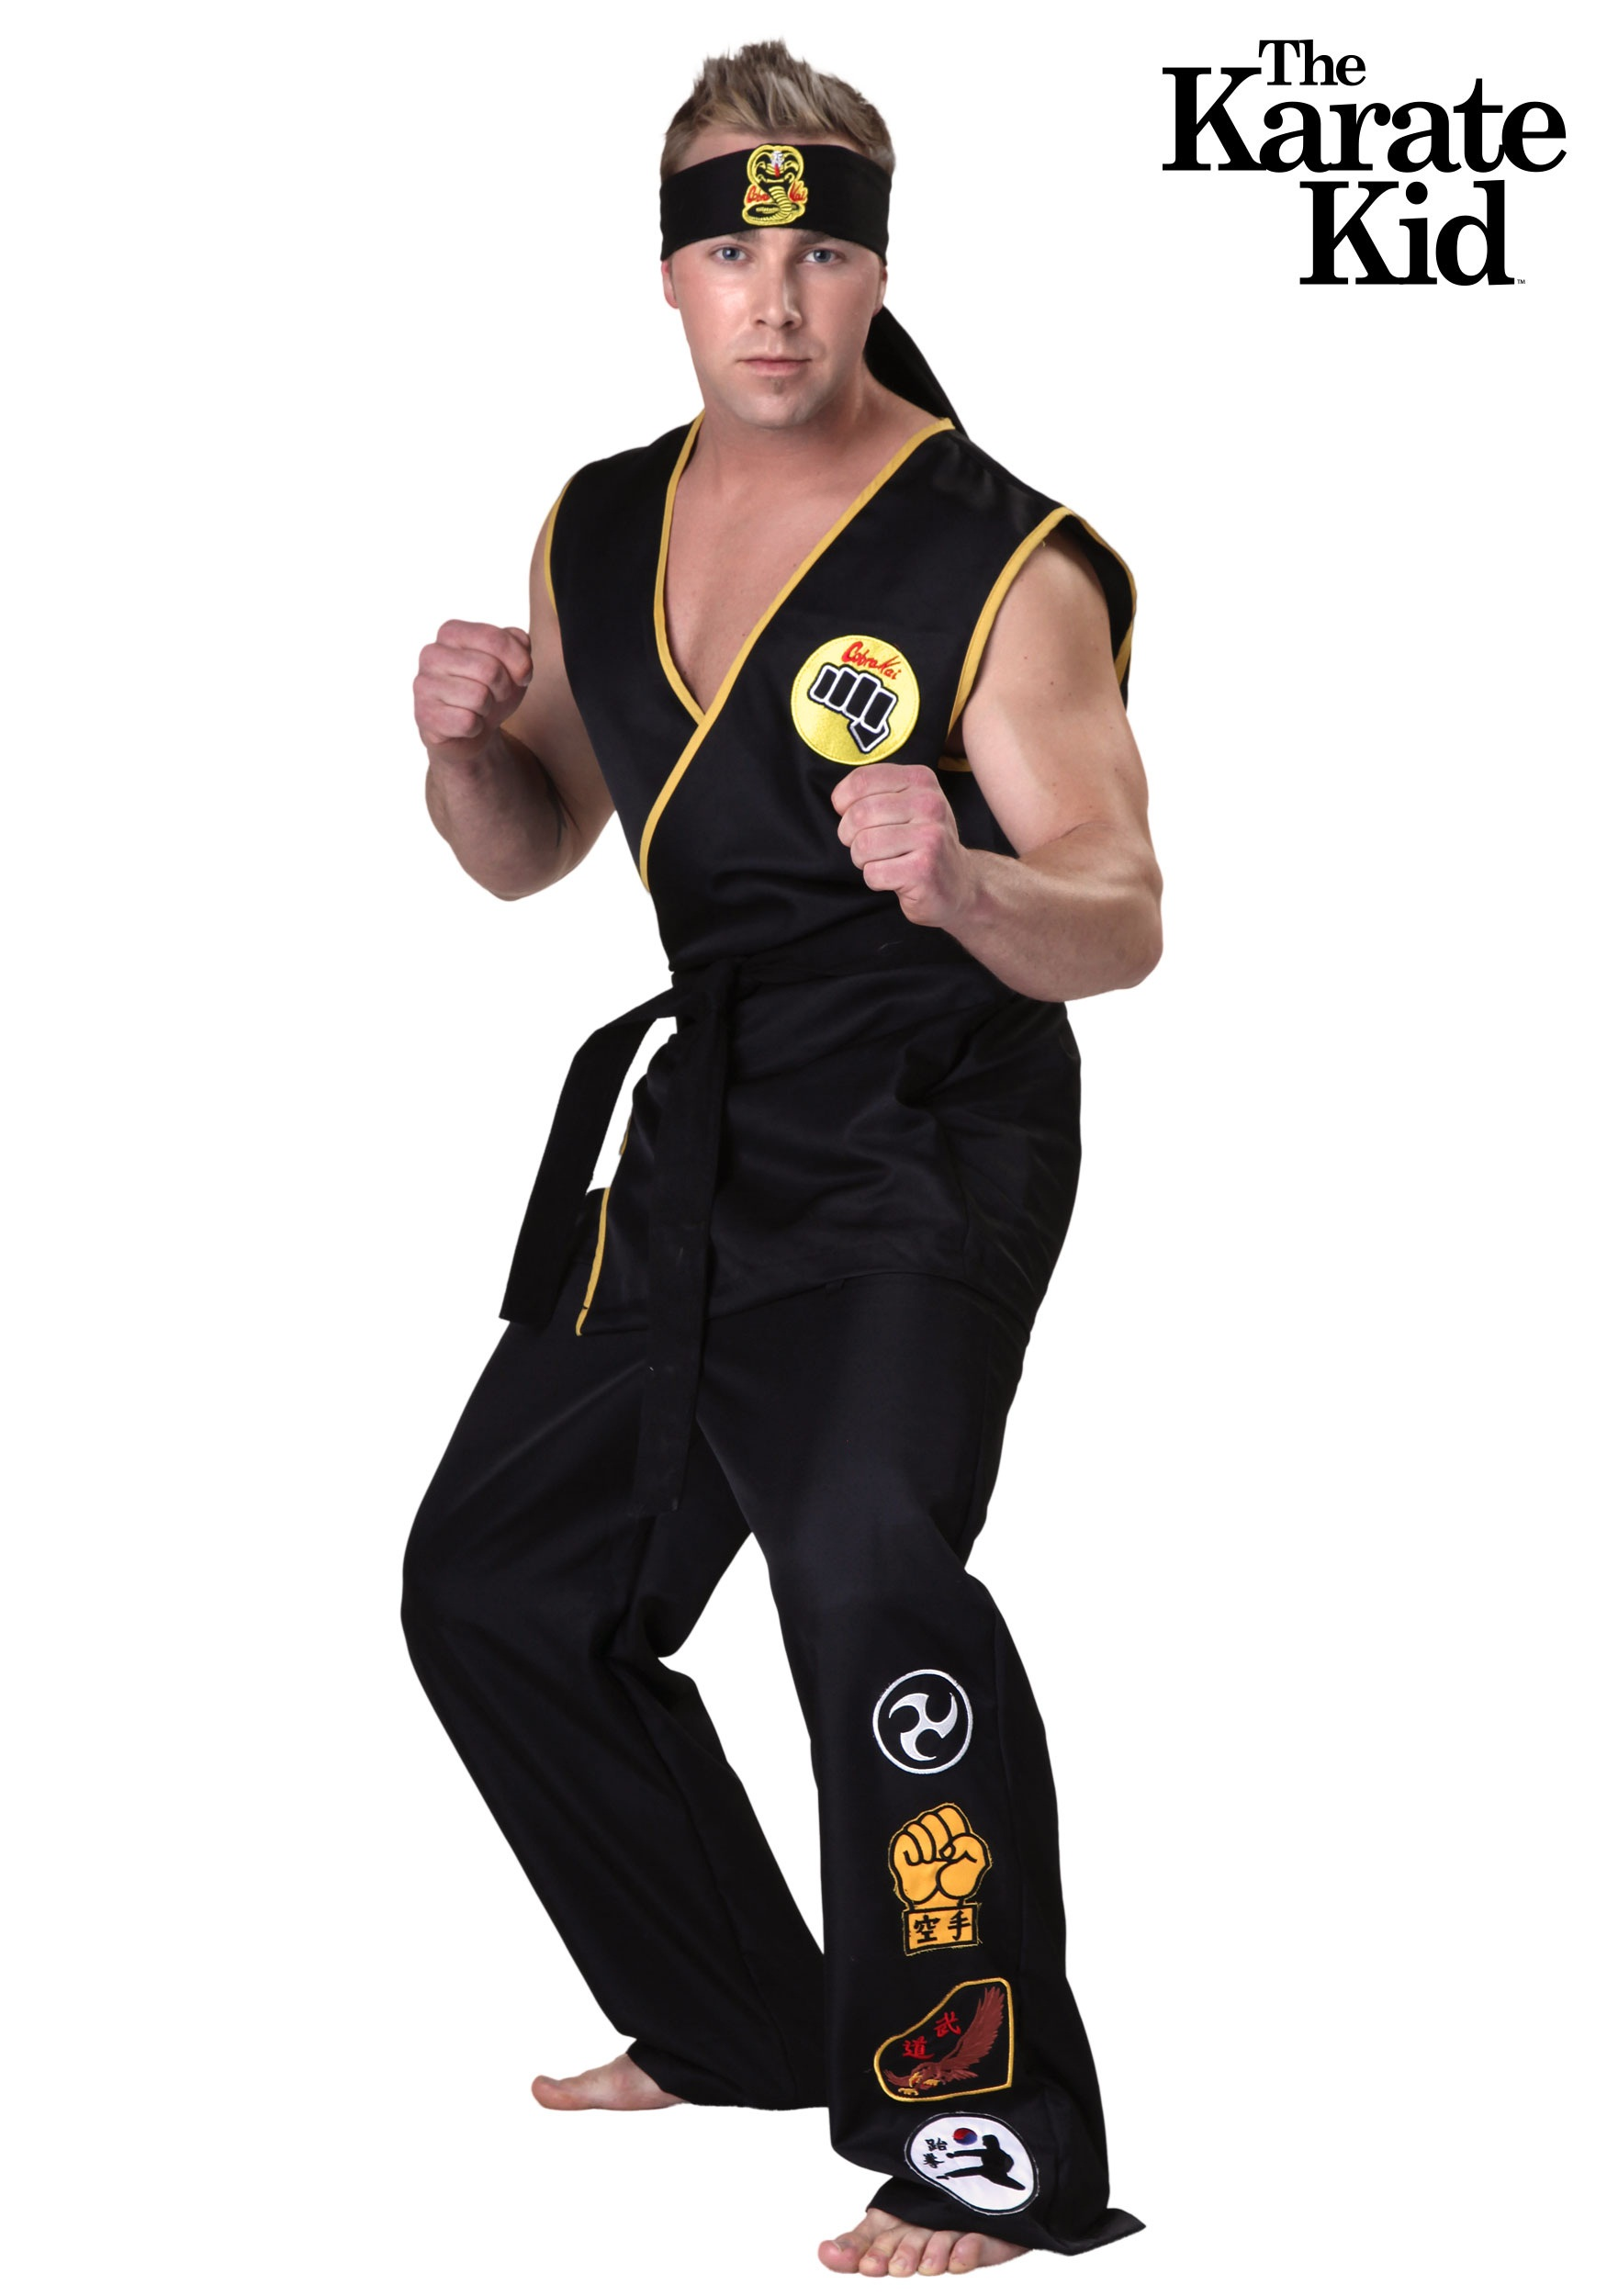 Karate Kid Cobra Kai Costume  sc 1 st  Halloween Costumes & Ninja Costumes - Adult Kids Ninja Halloween Costume